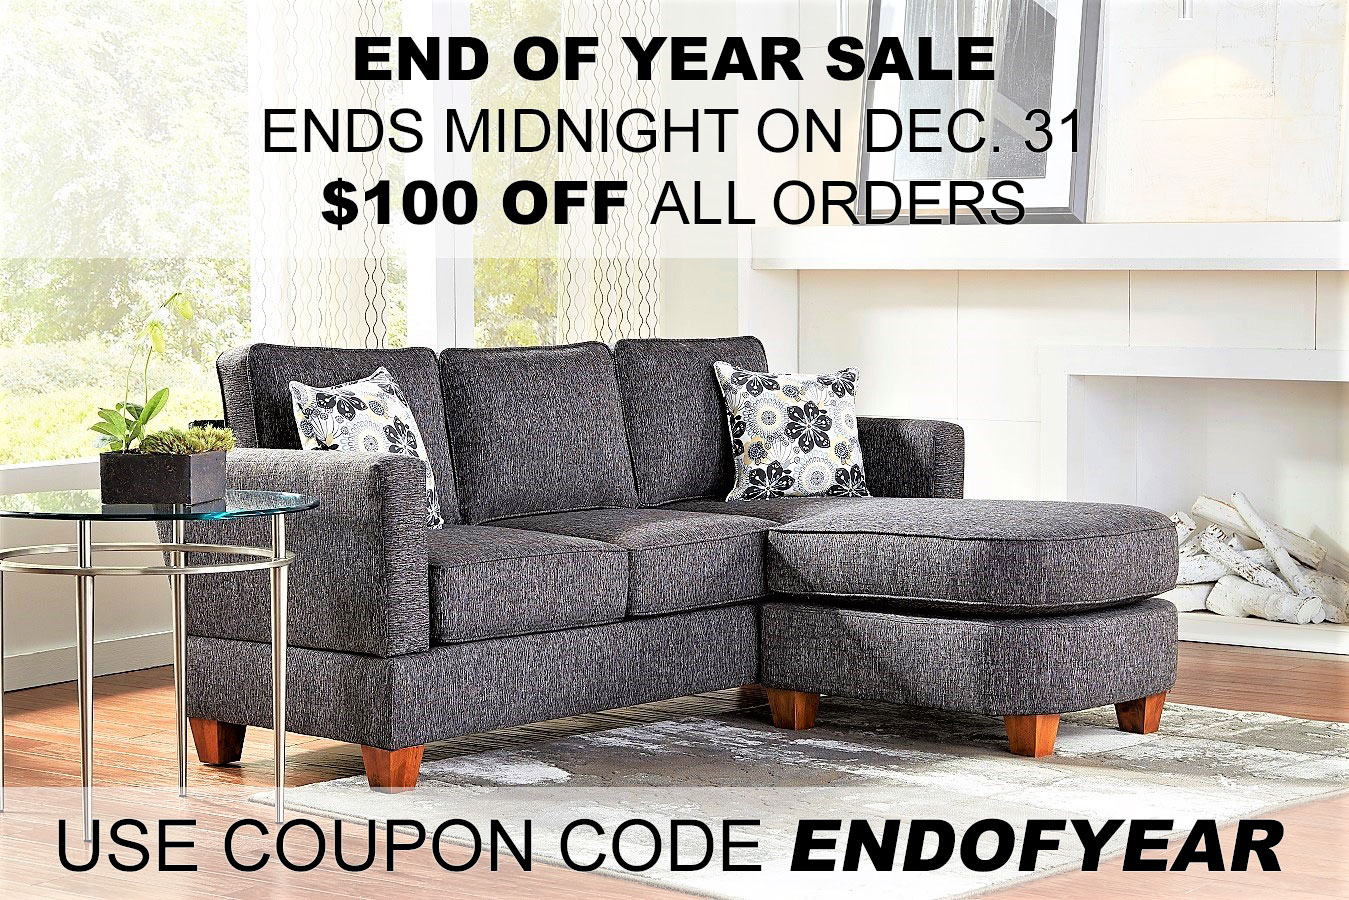 End Of Year Sale Ends Midnight on Dec 31, $100 of all orders, Use coupon code endofyear